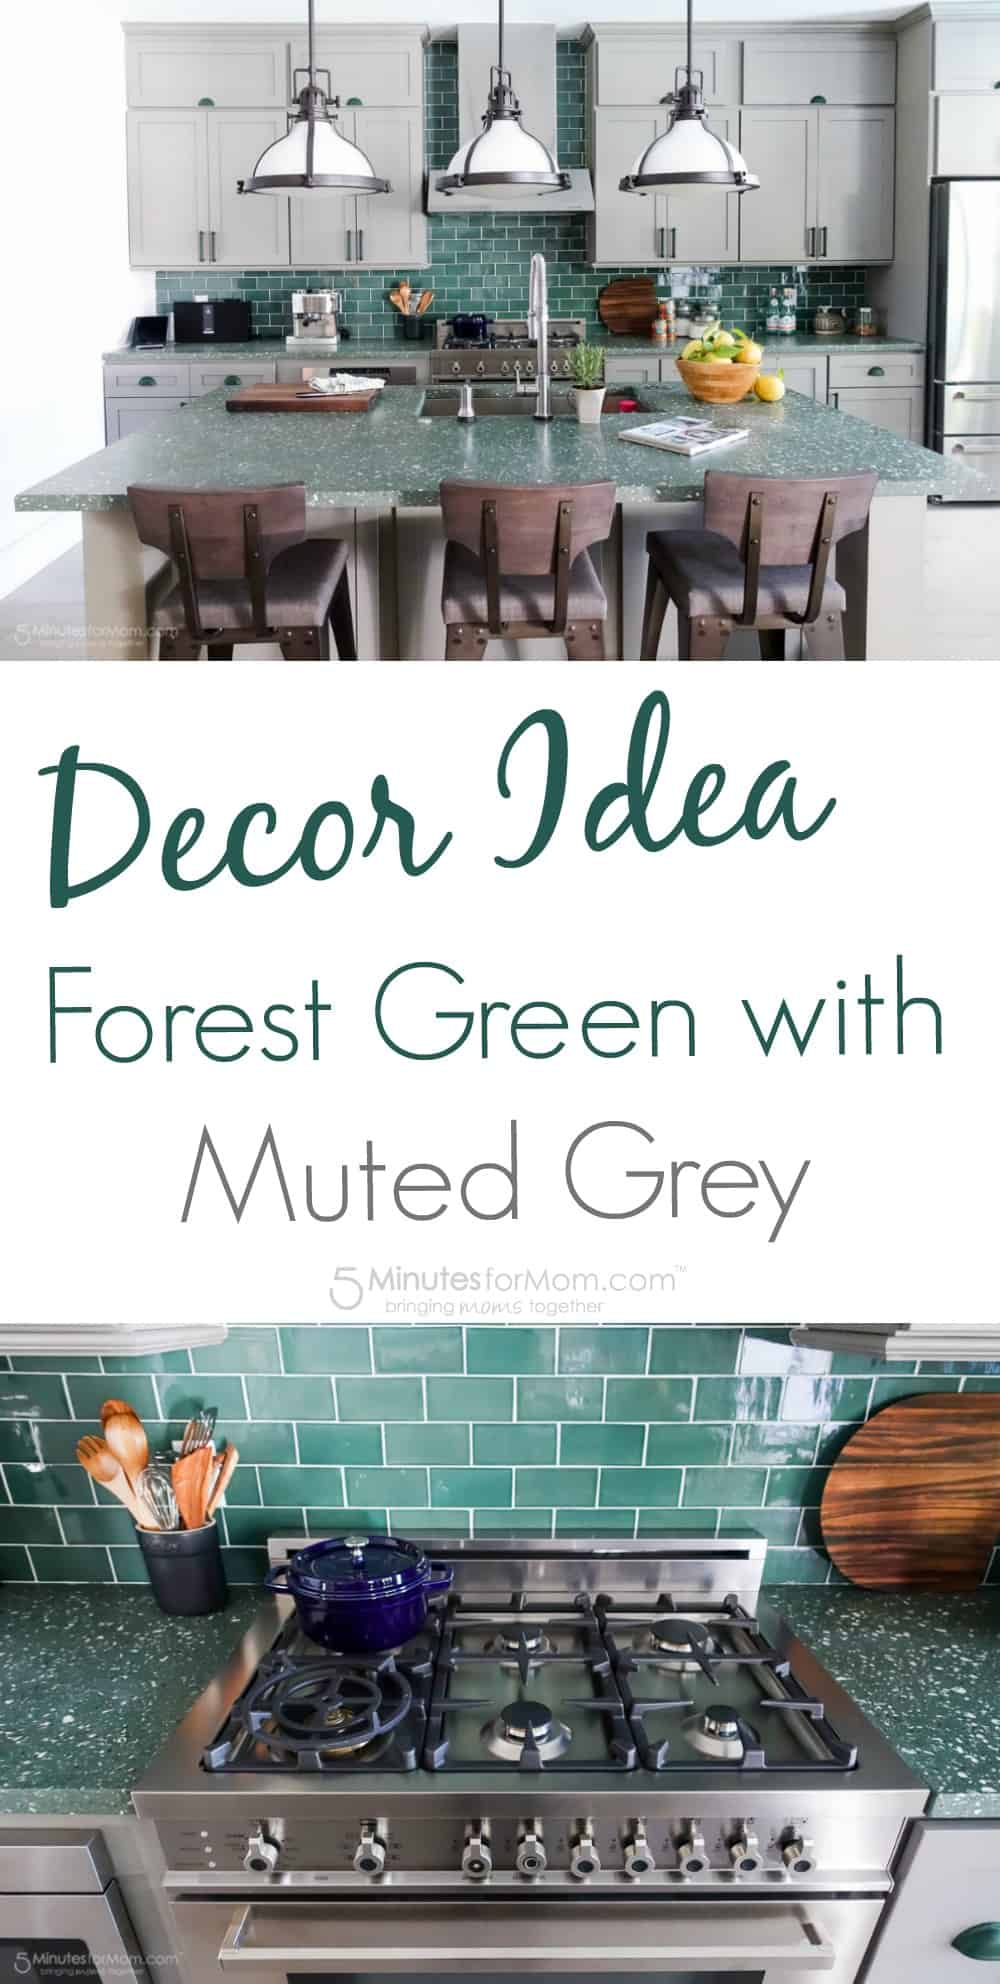 Decor Idea - Forest Green with Muted Grey Kitchen